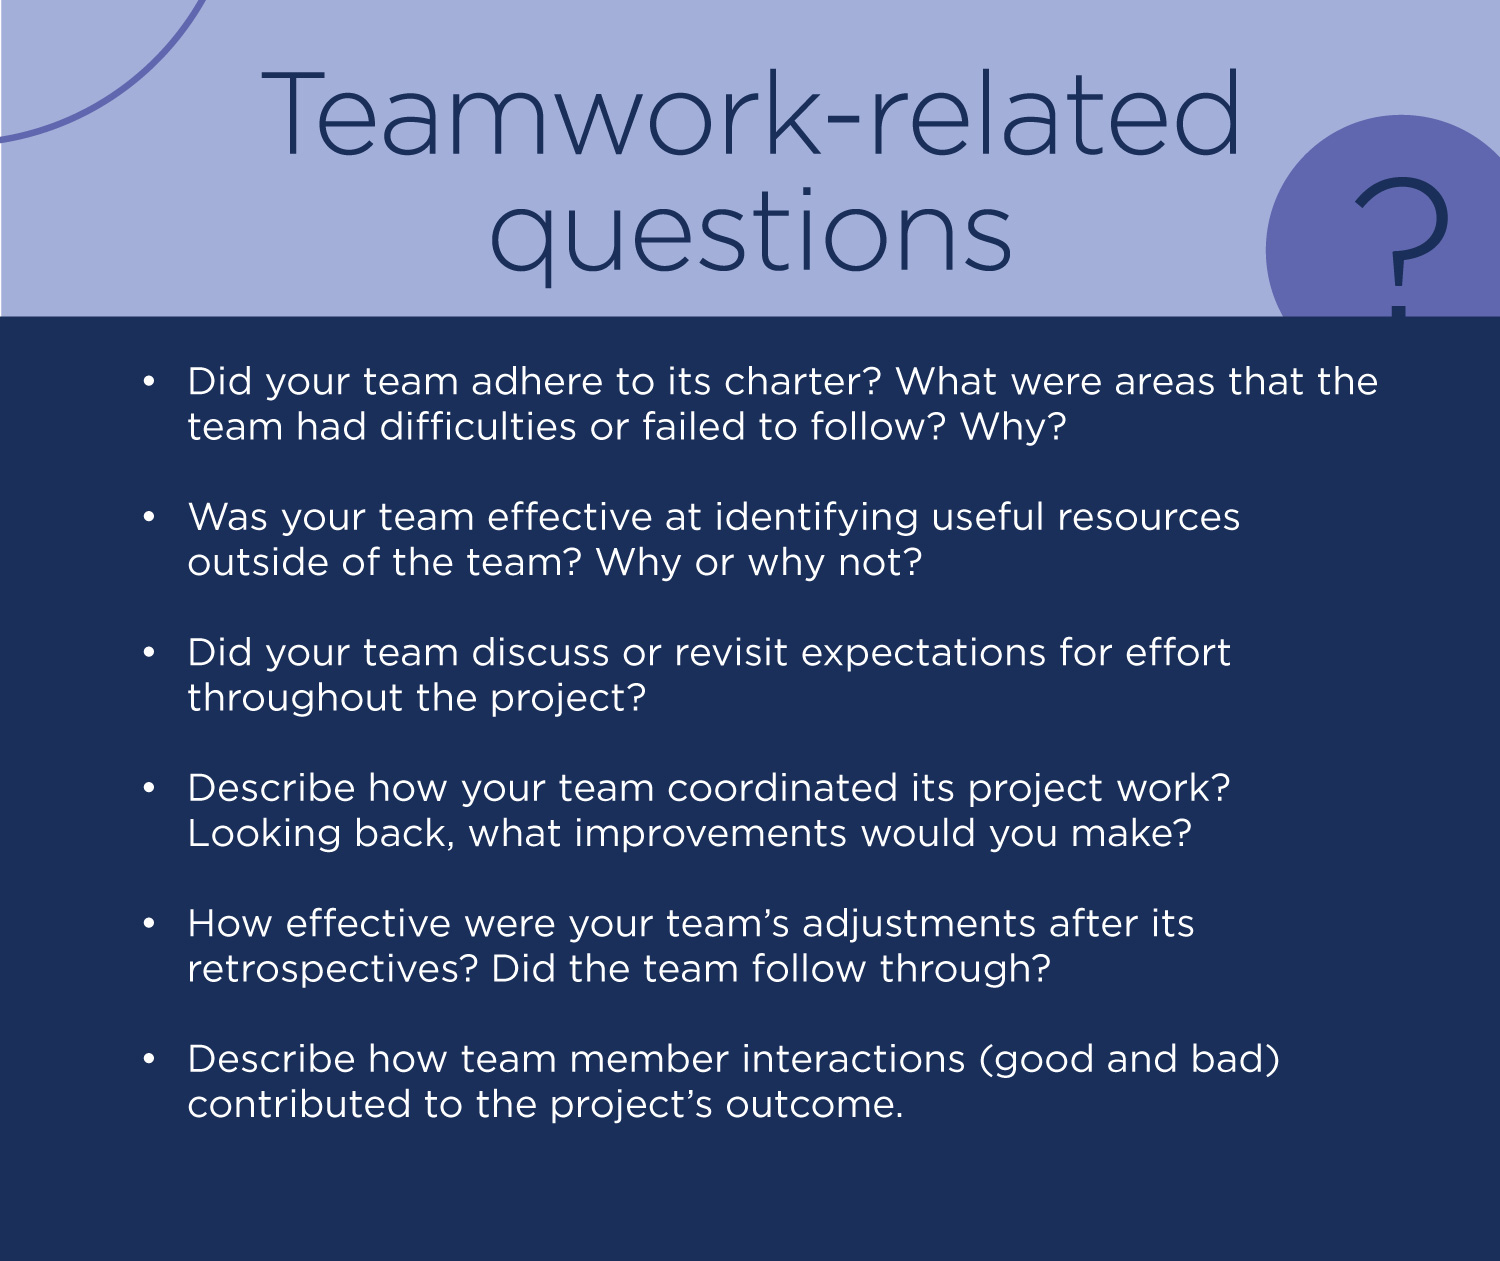 Teamwork-related questions